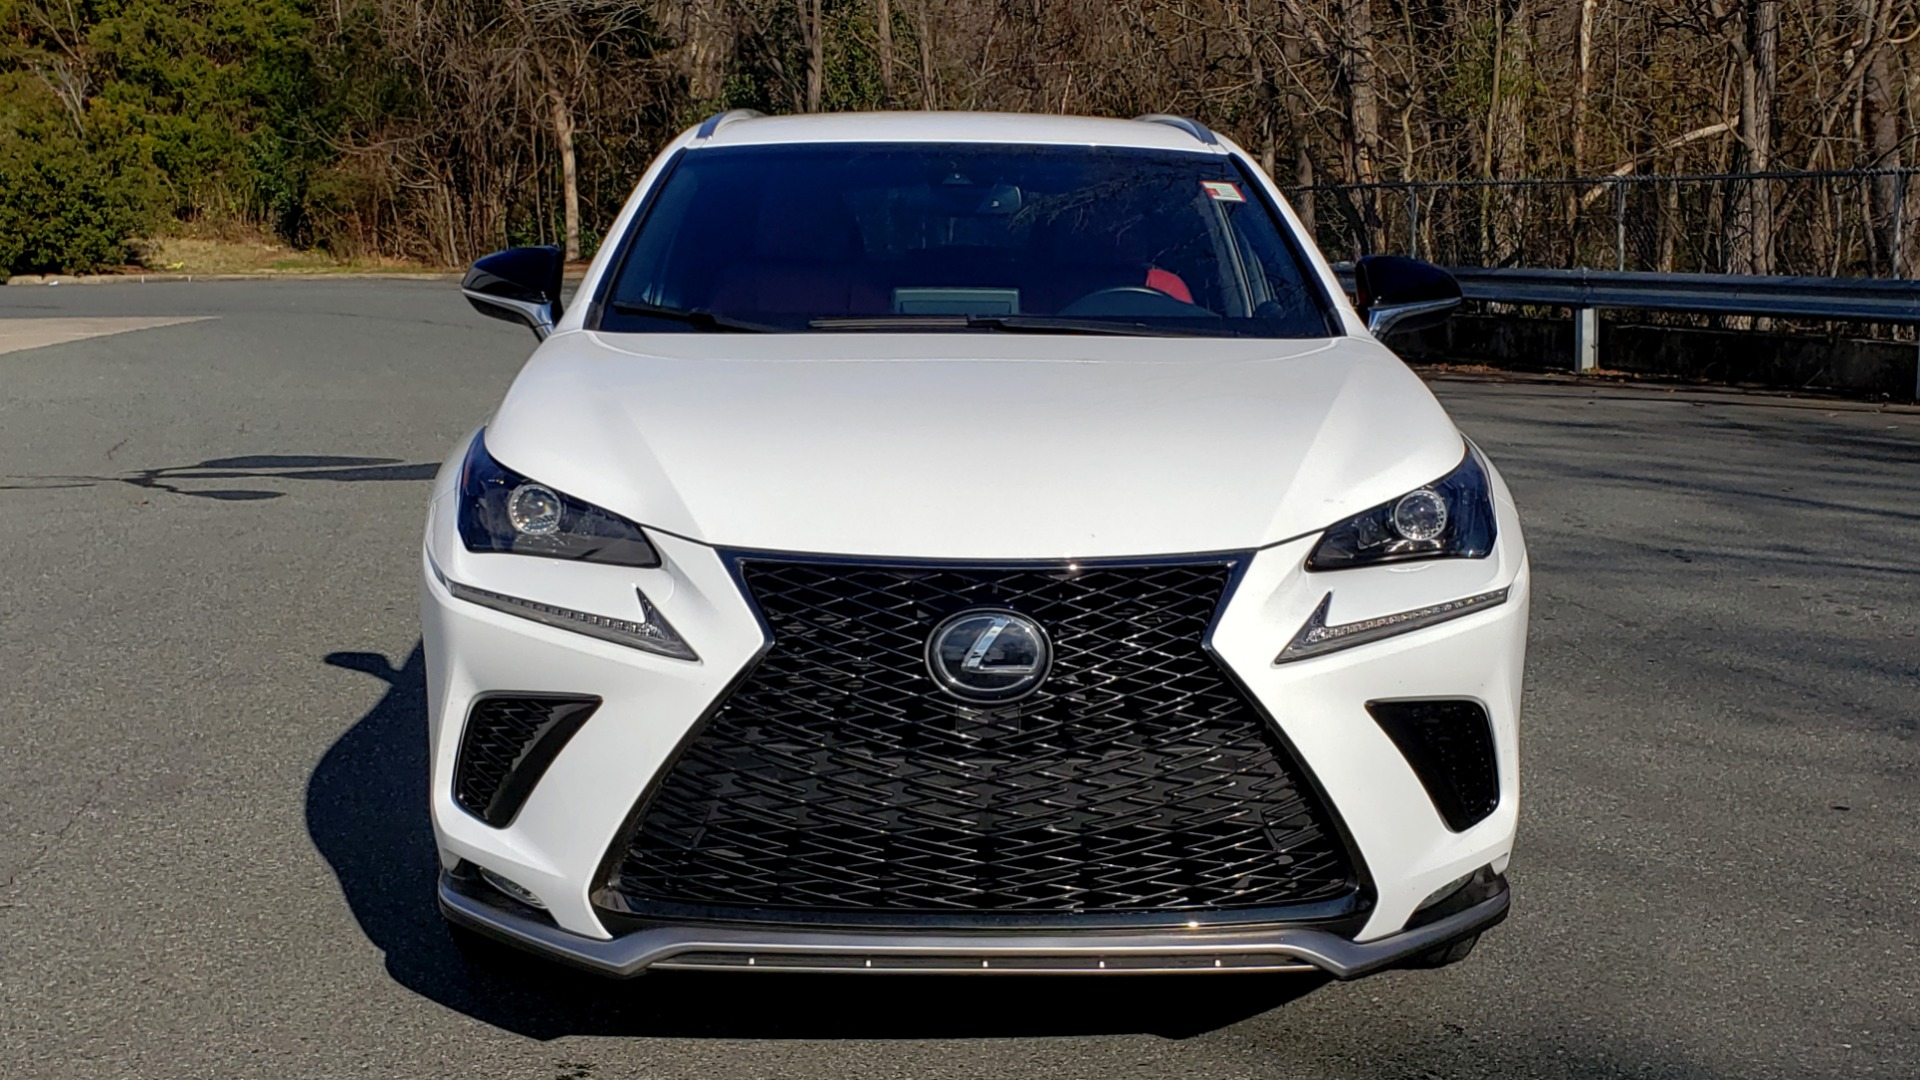 Used 2019 Lexus NX 300 F-SPORT / 2.0L TURBO / LEATHER / 18IN WHEELS / REARVIEW for sale $31,195 at Formula Imports in Charlotte NC 28227 25